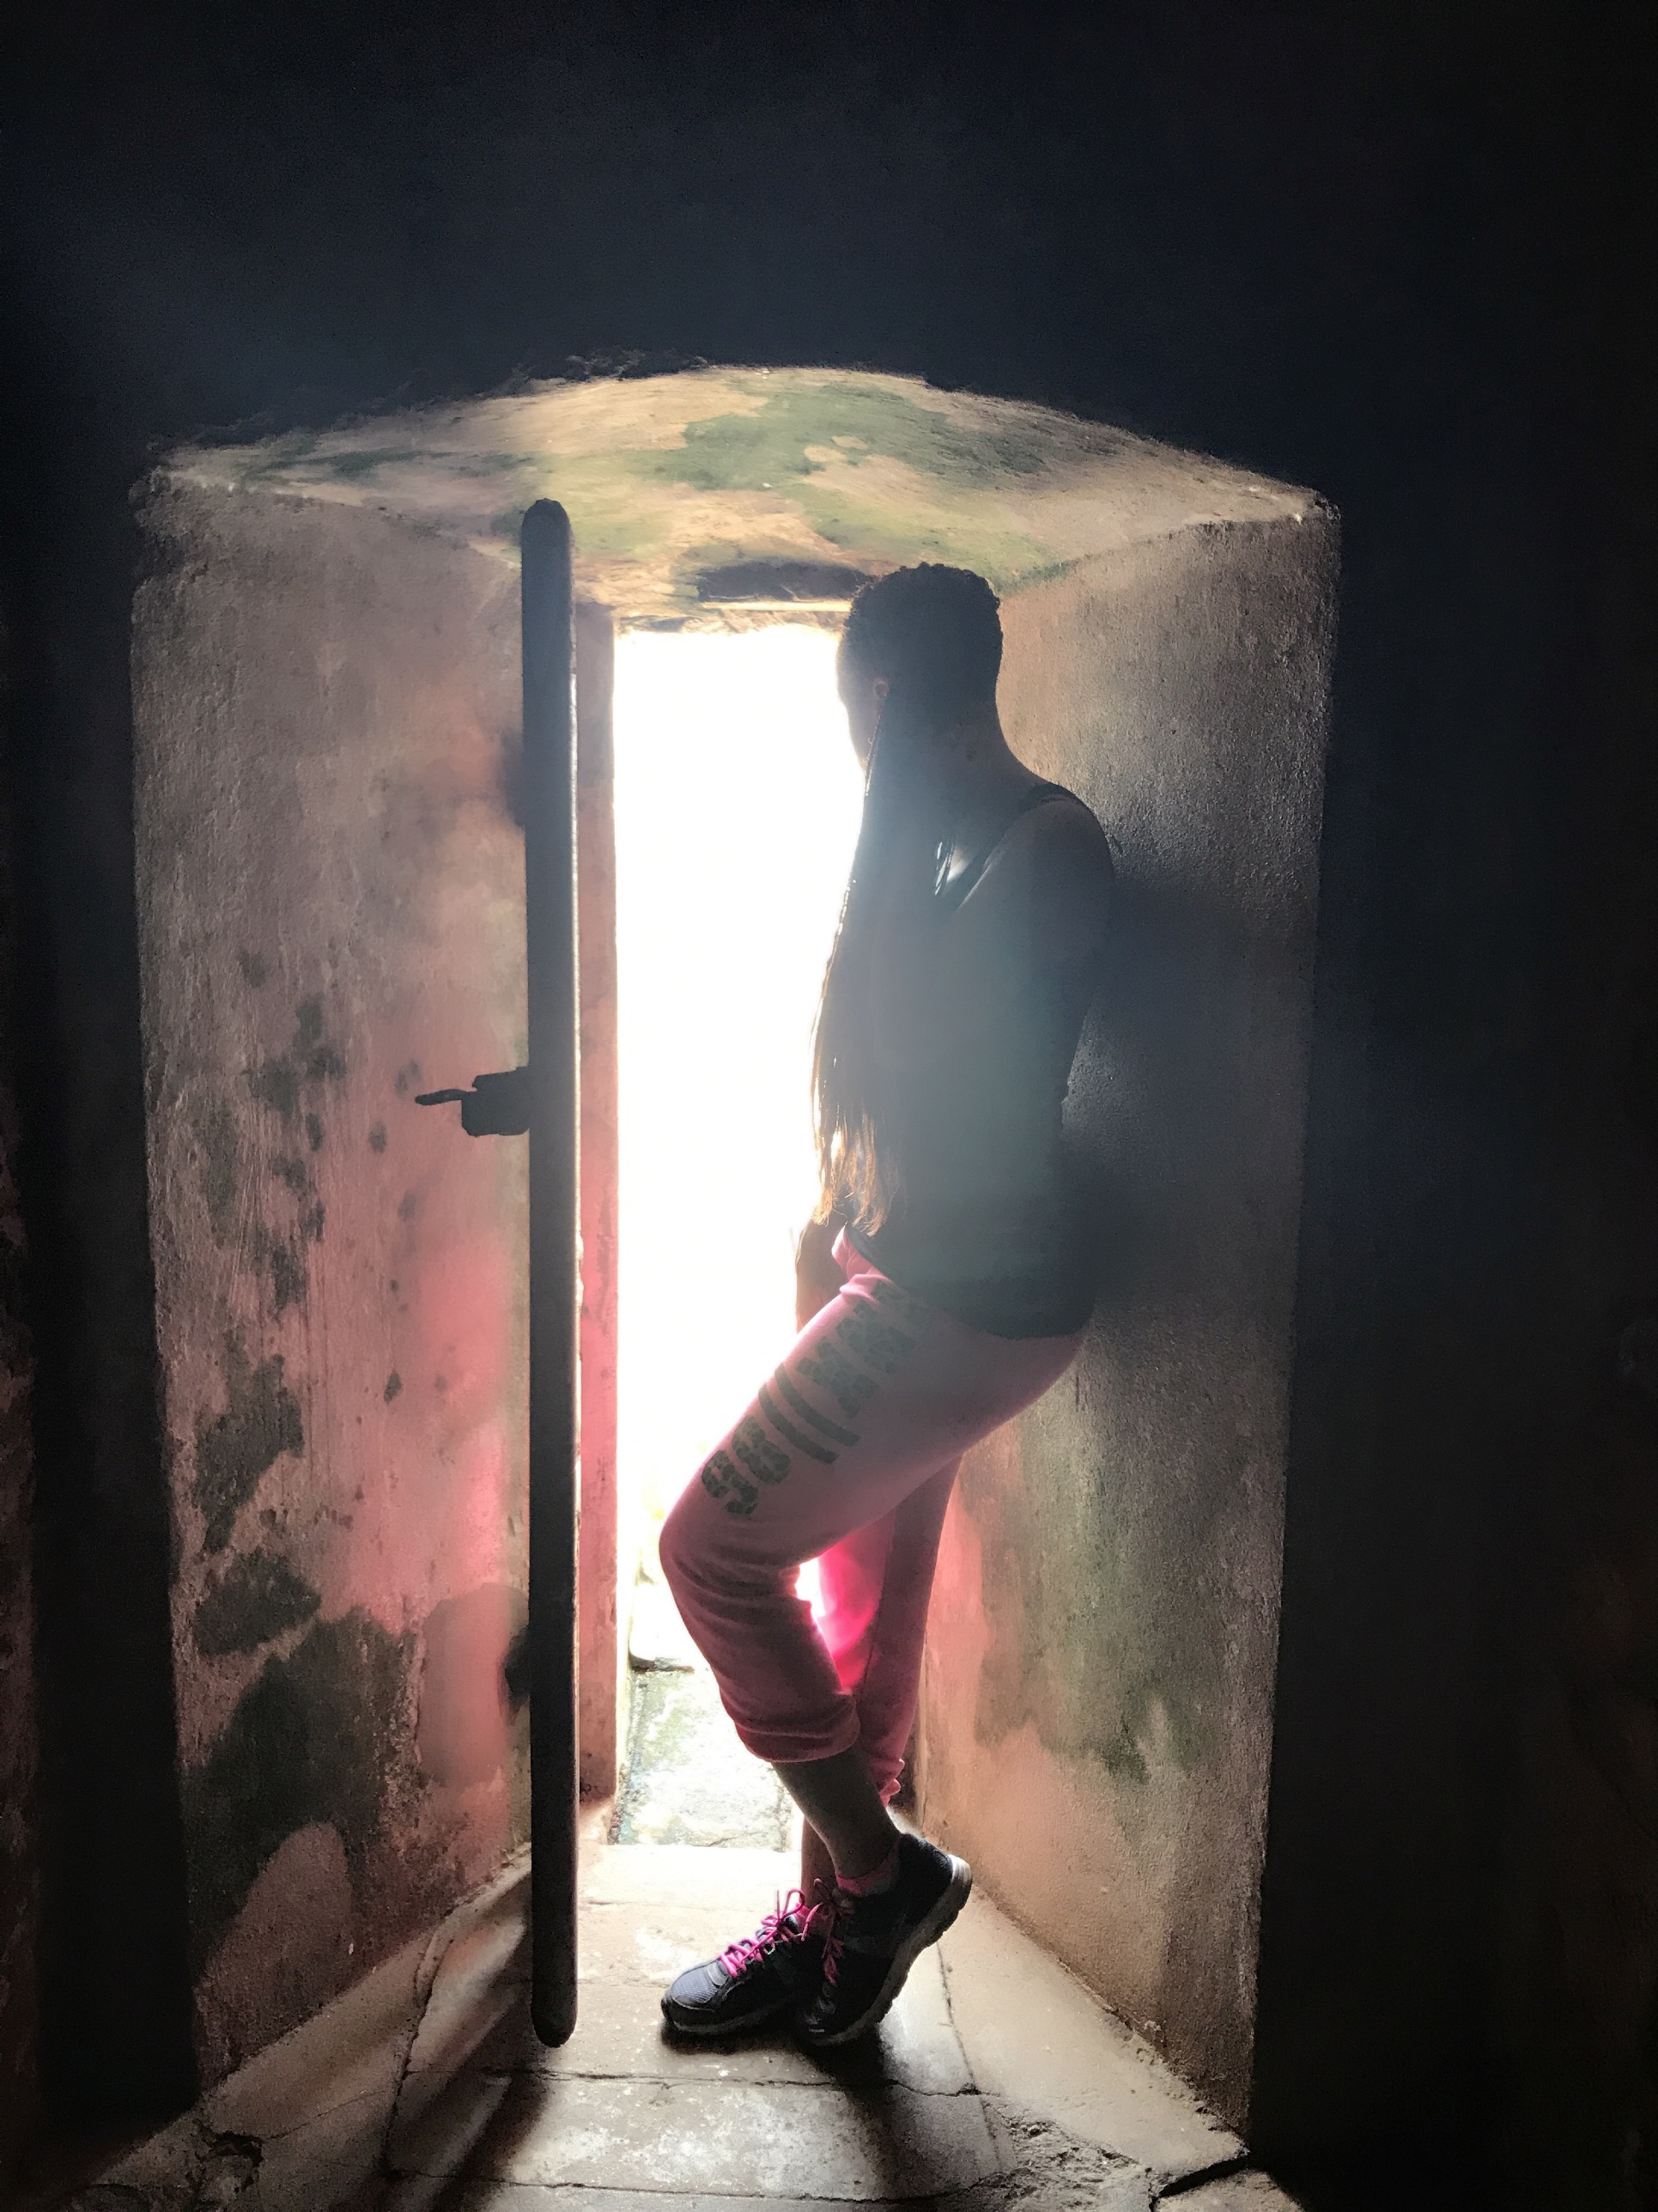 In Ghana last year at the Elmina Castle. Standing here at the door of no return. The last place our ancestors stood before the Middle Passage journey to America. Definitely was a bucket list item to experience this.